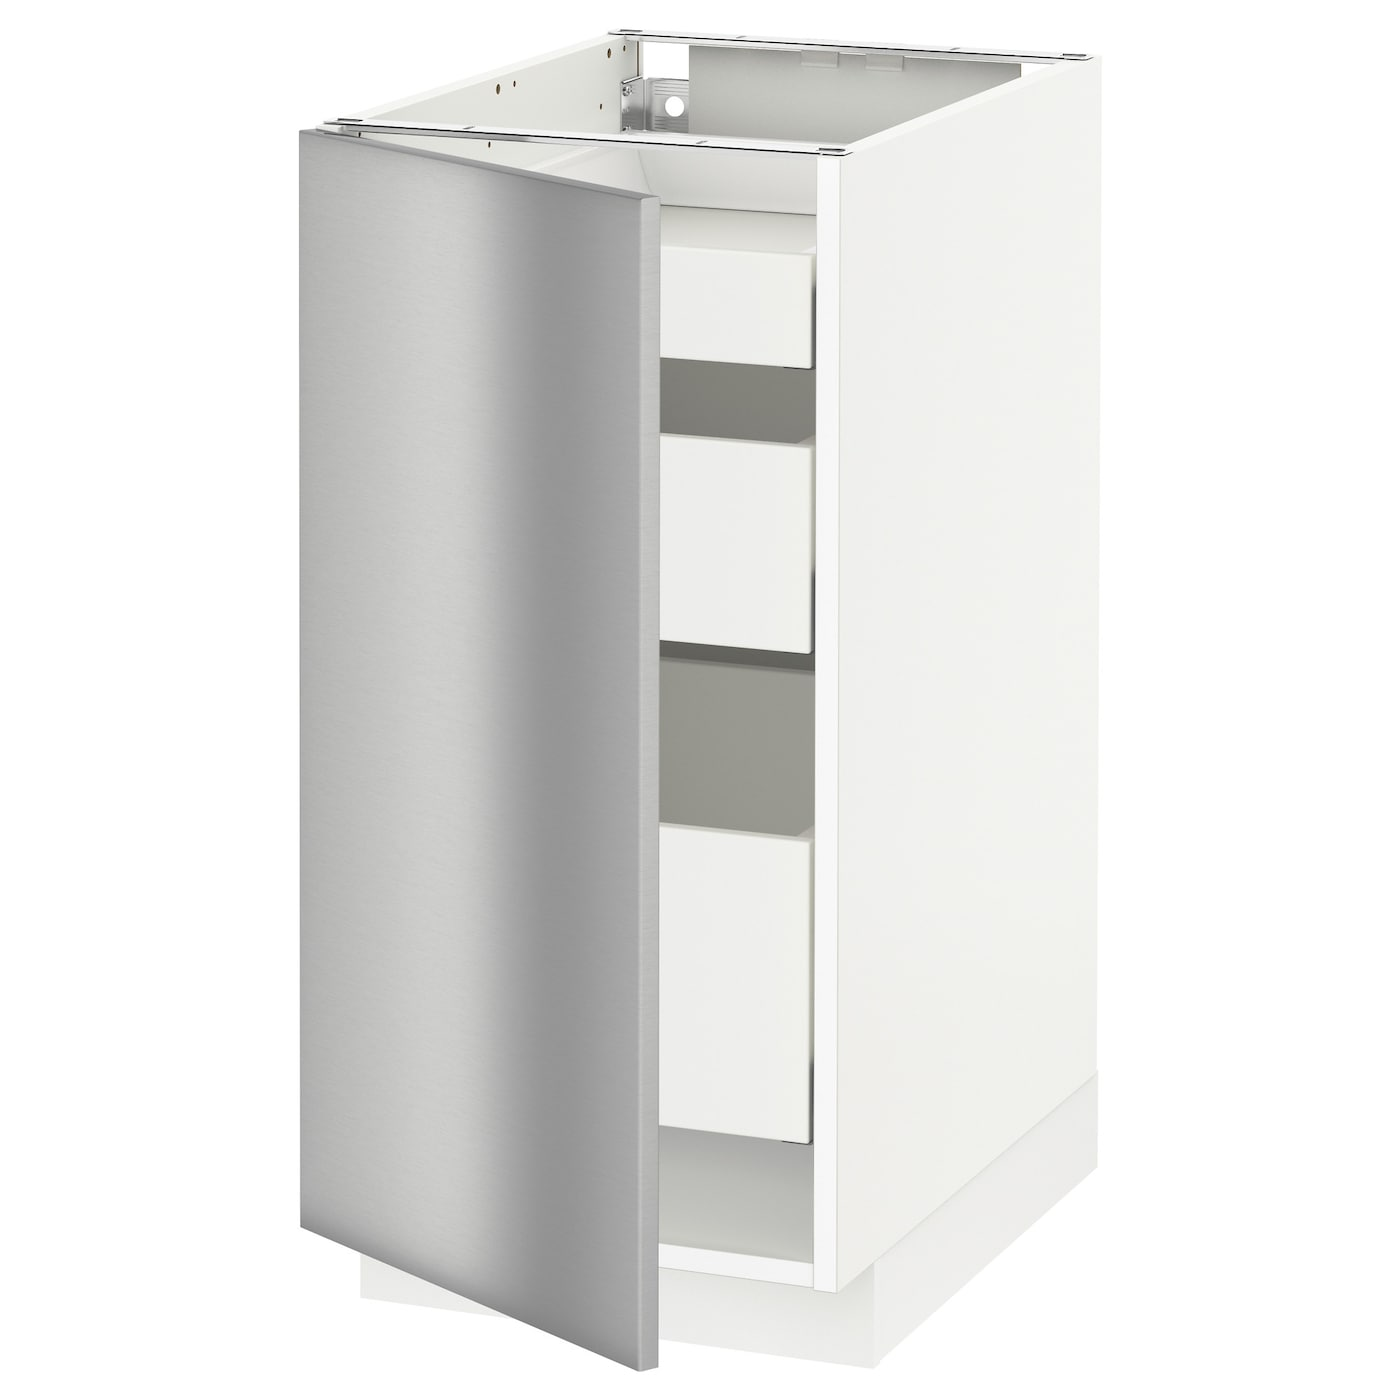 stainless steel kitchen base cabinets metod maximera base cabinet with 1 door 3 drawers white 8241